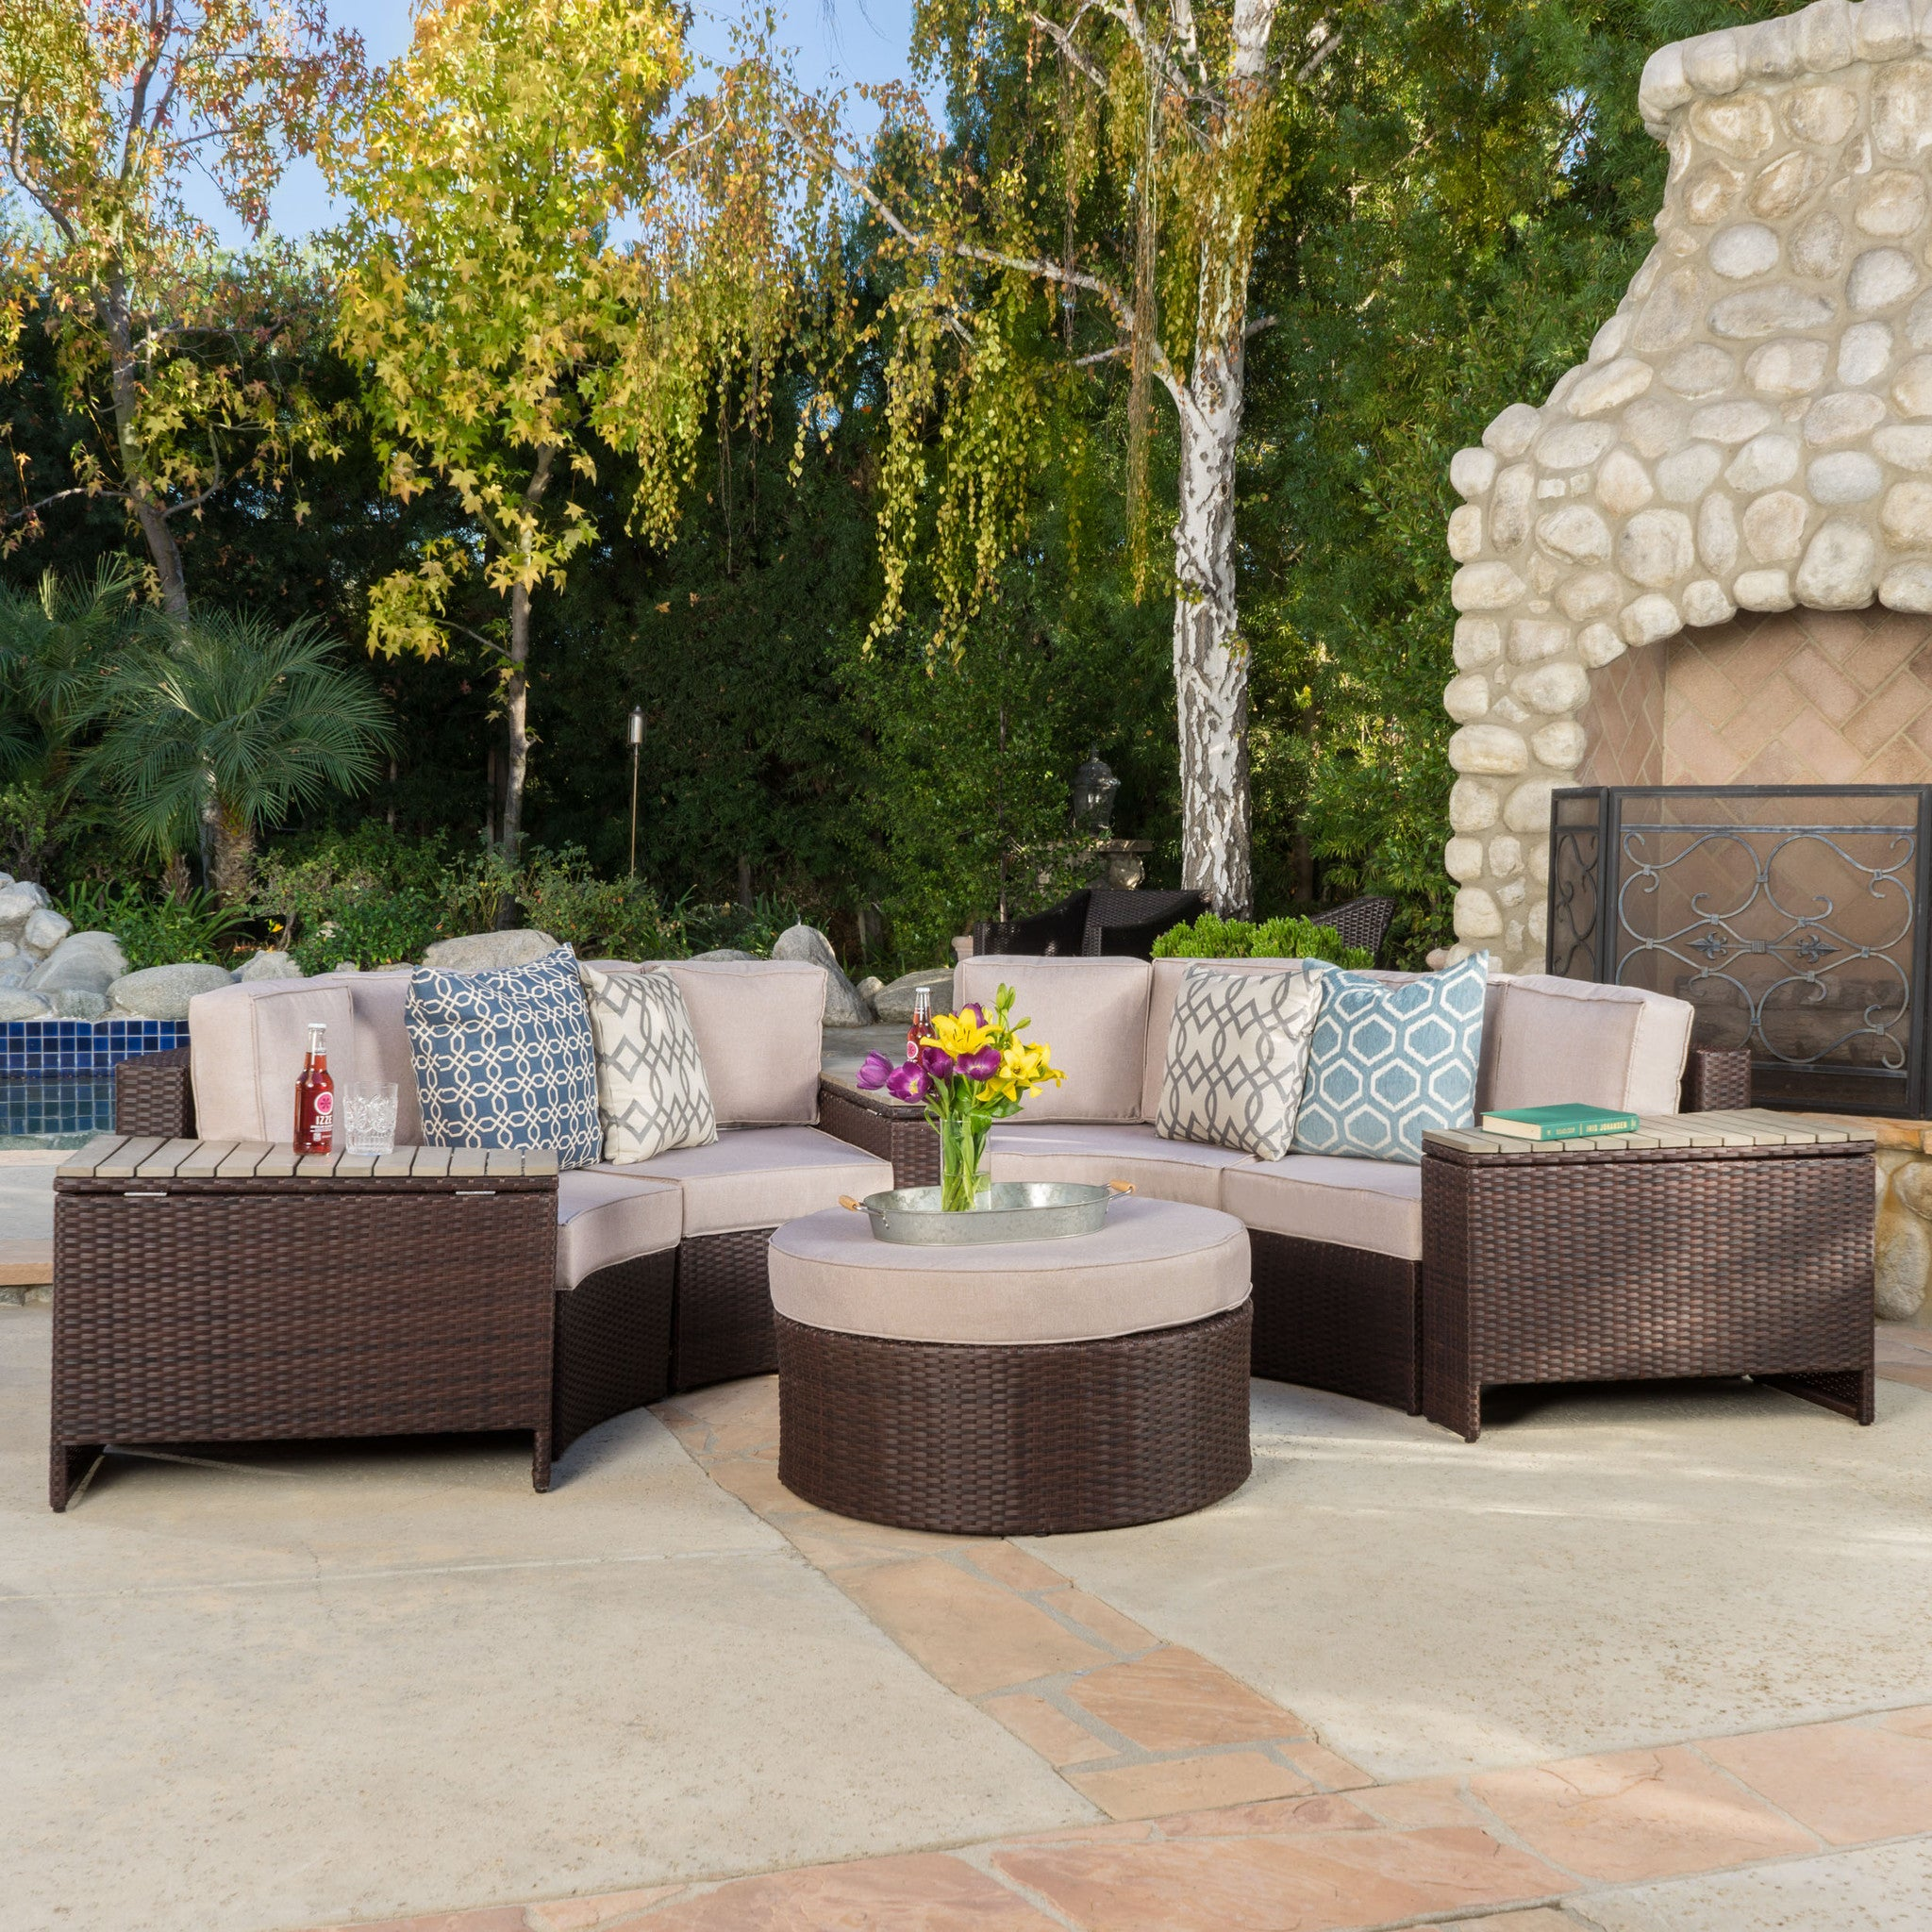 Outdoor Sectional Sofa Set Storage Trunks foto